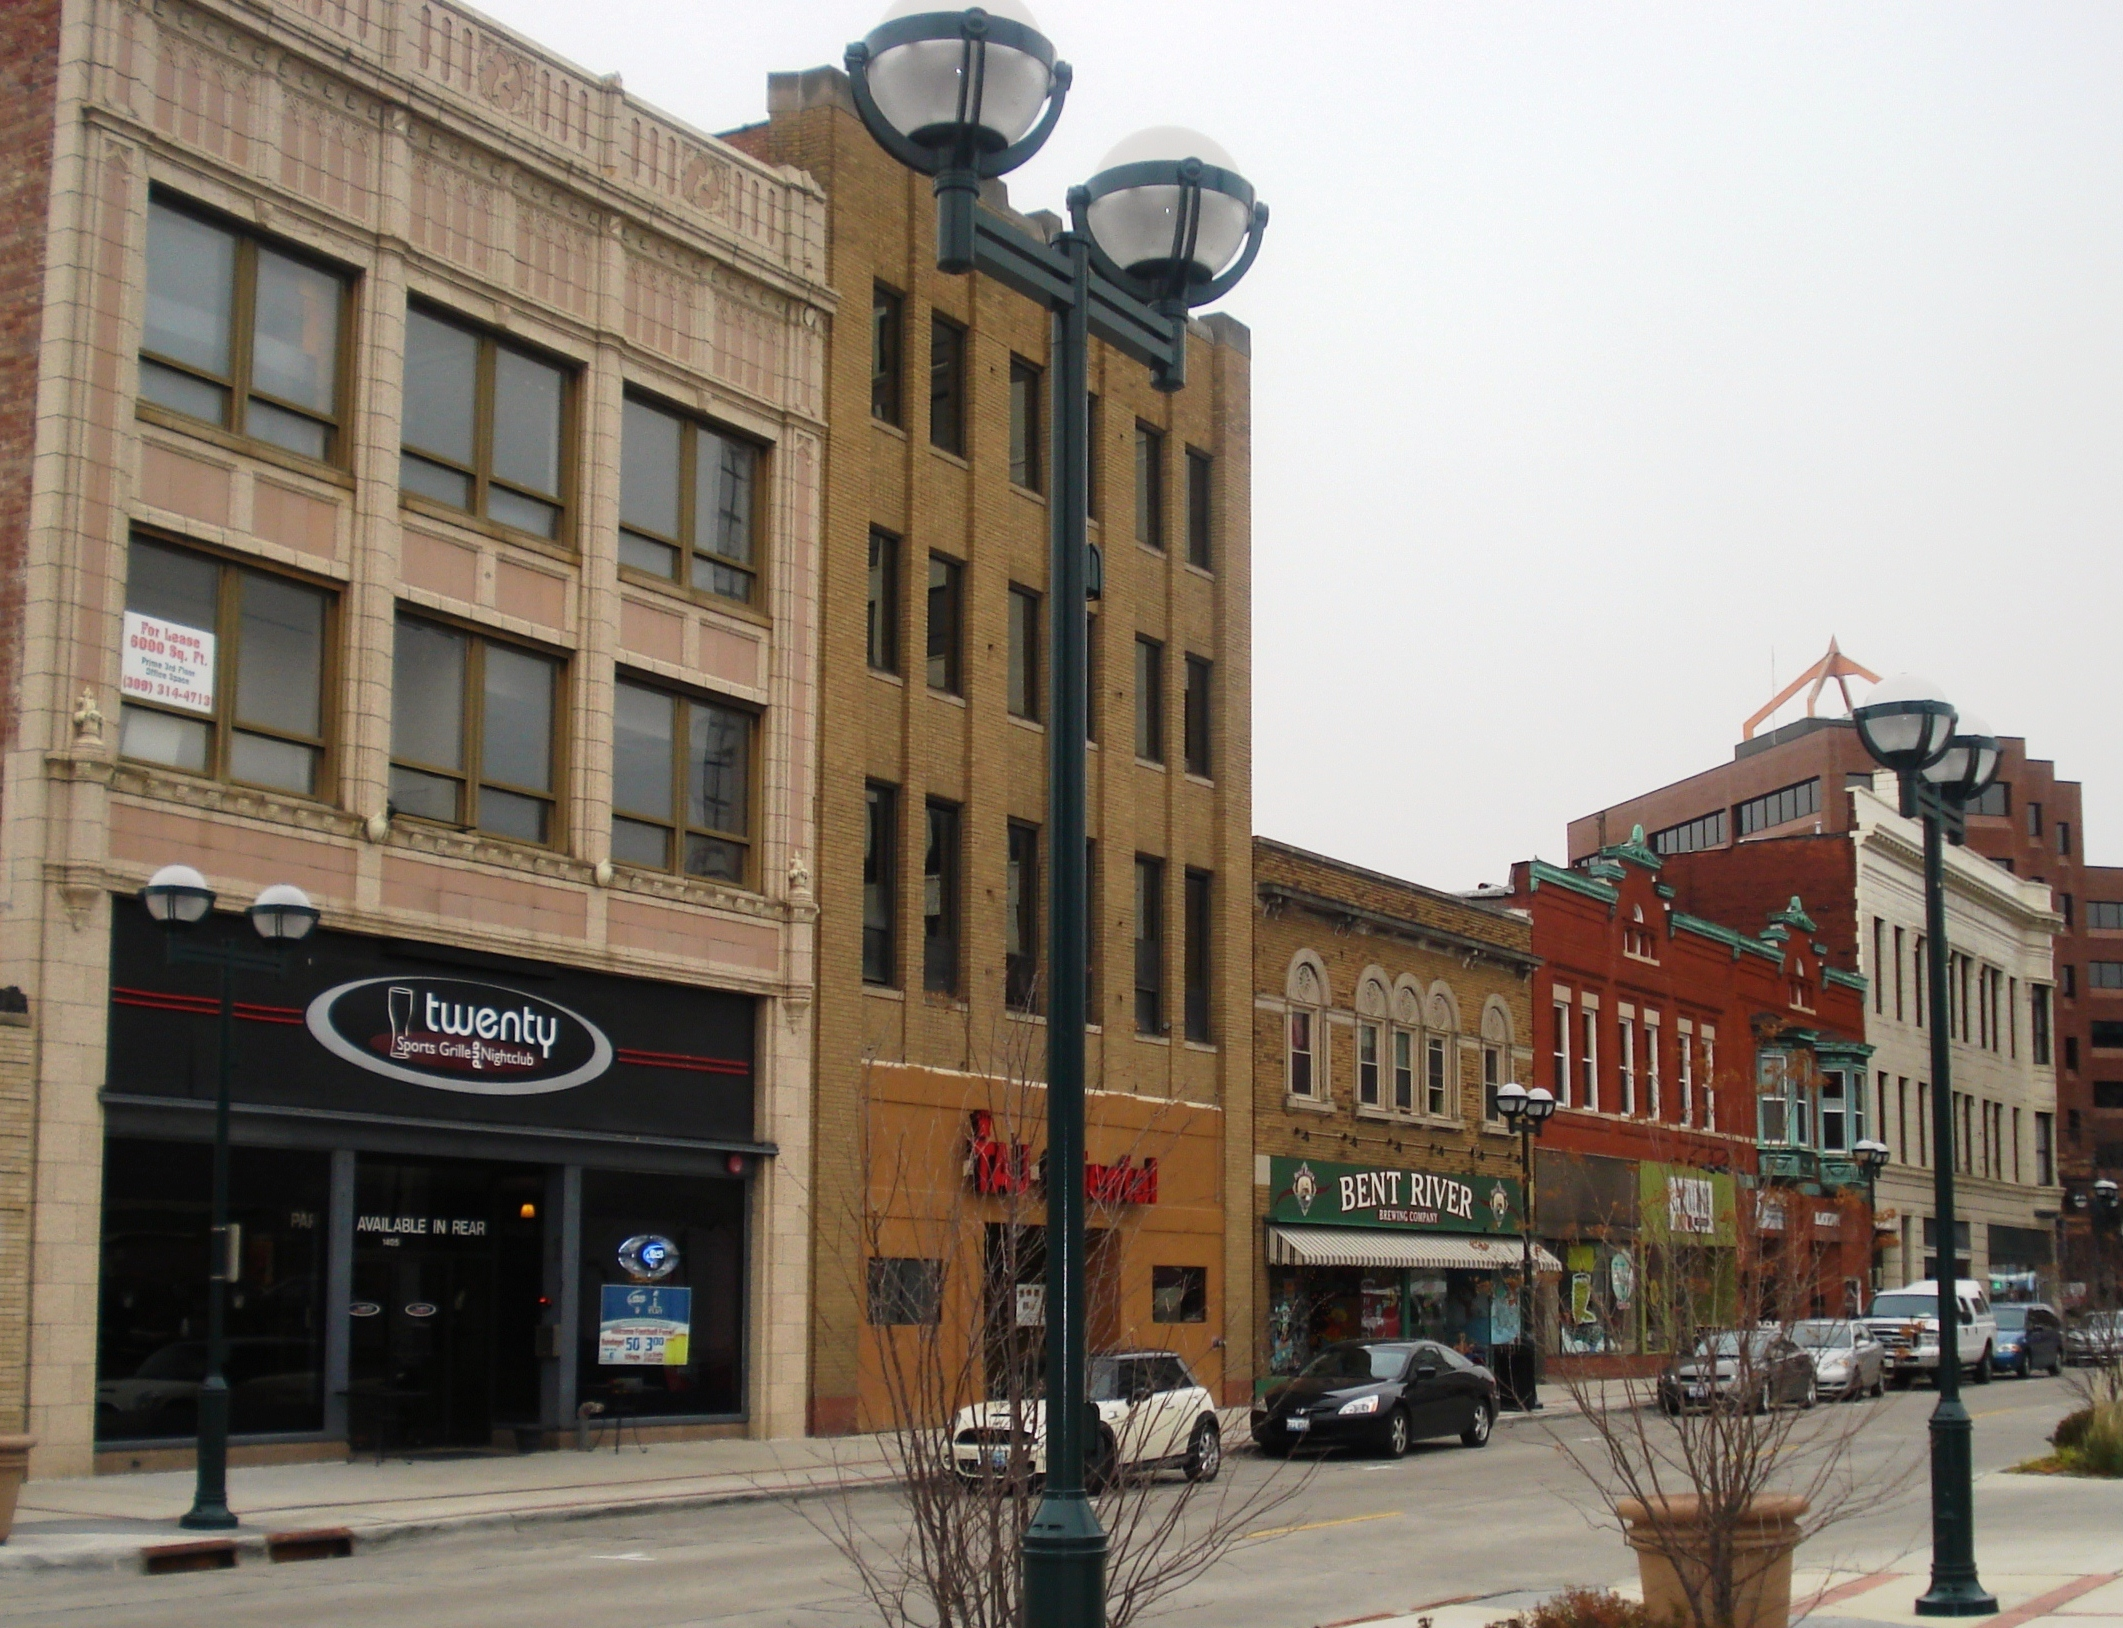 Moline Downtown Commercial Historic District